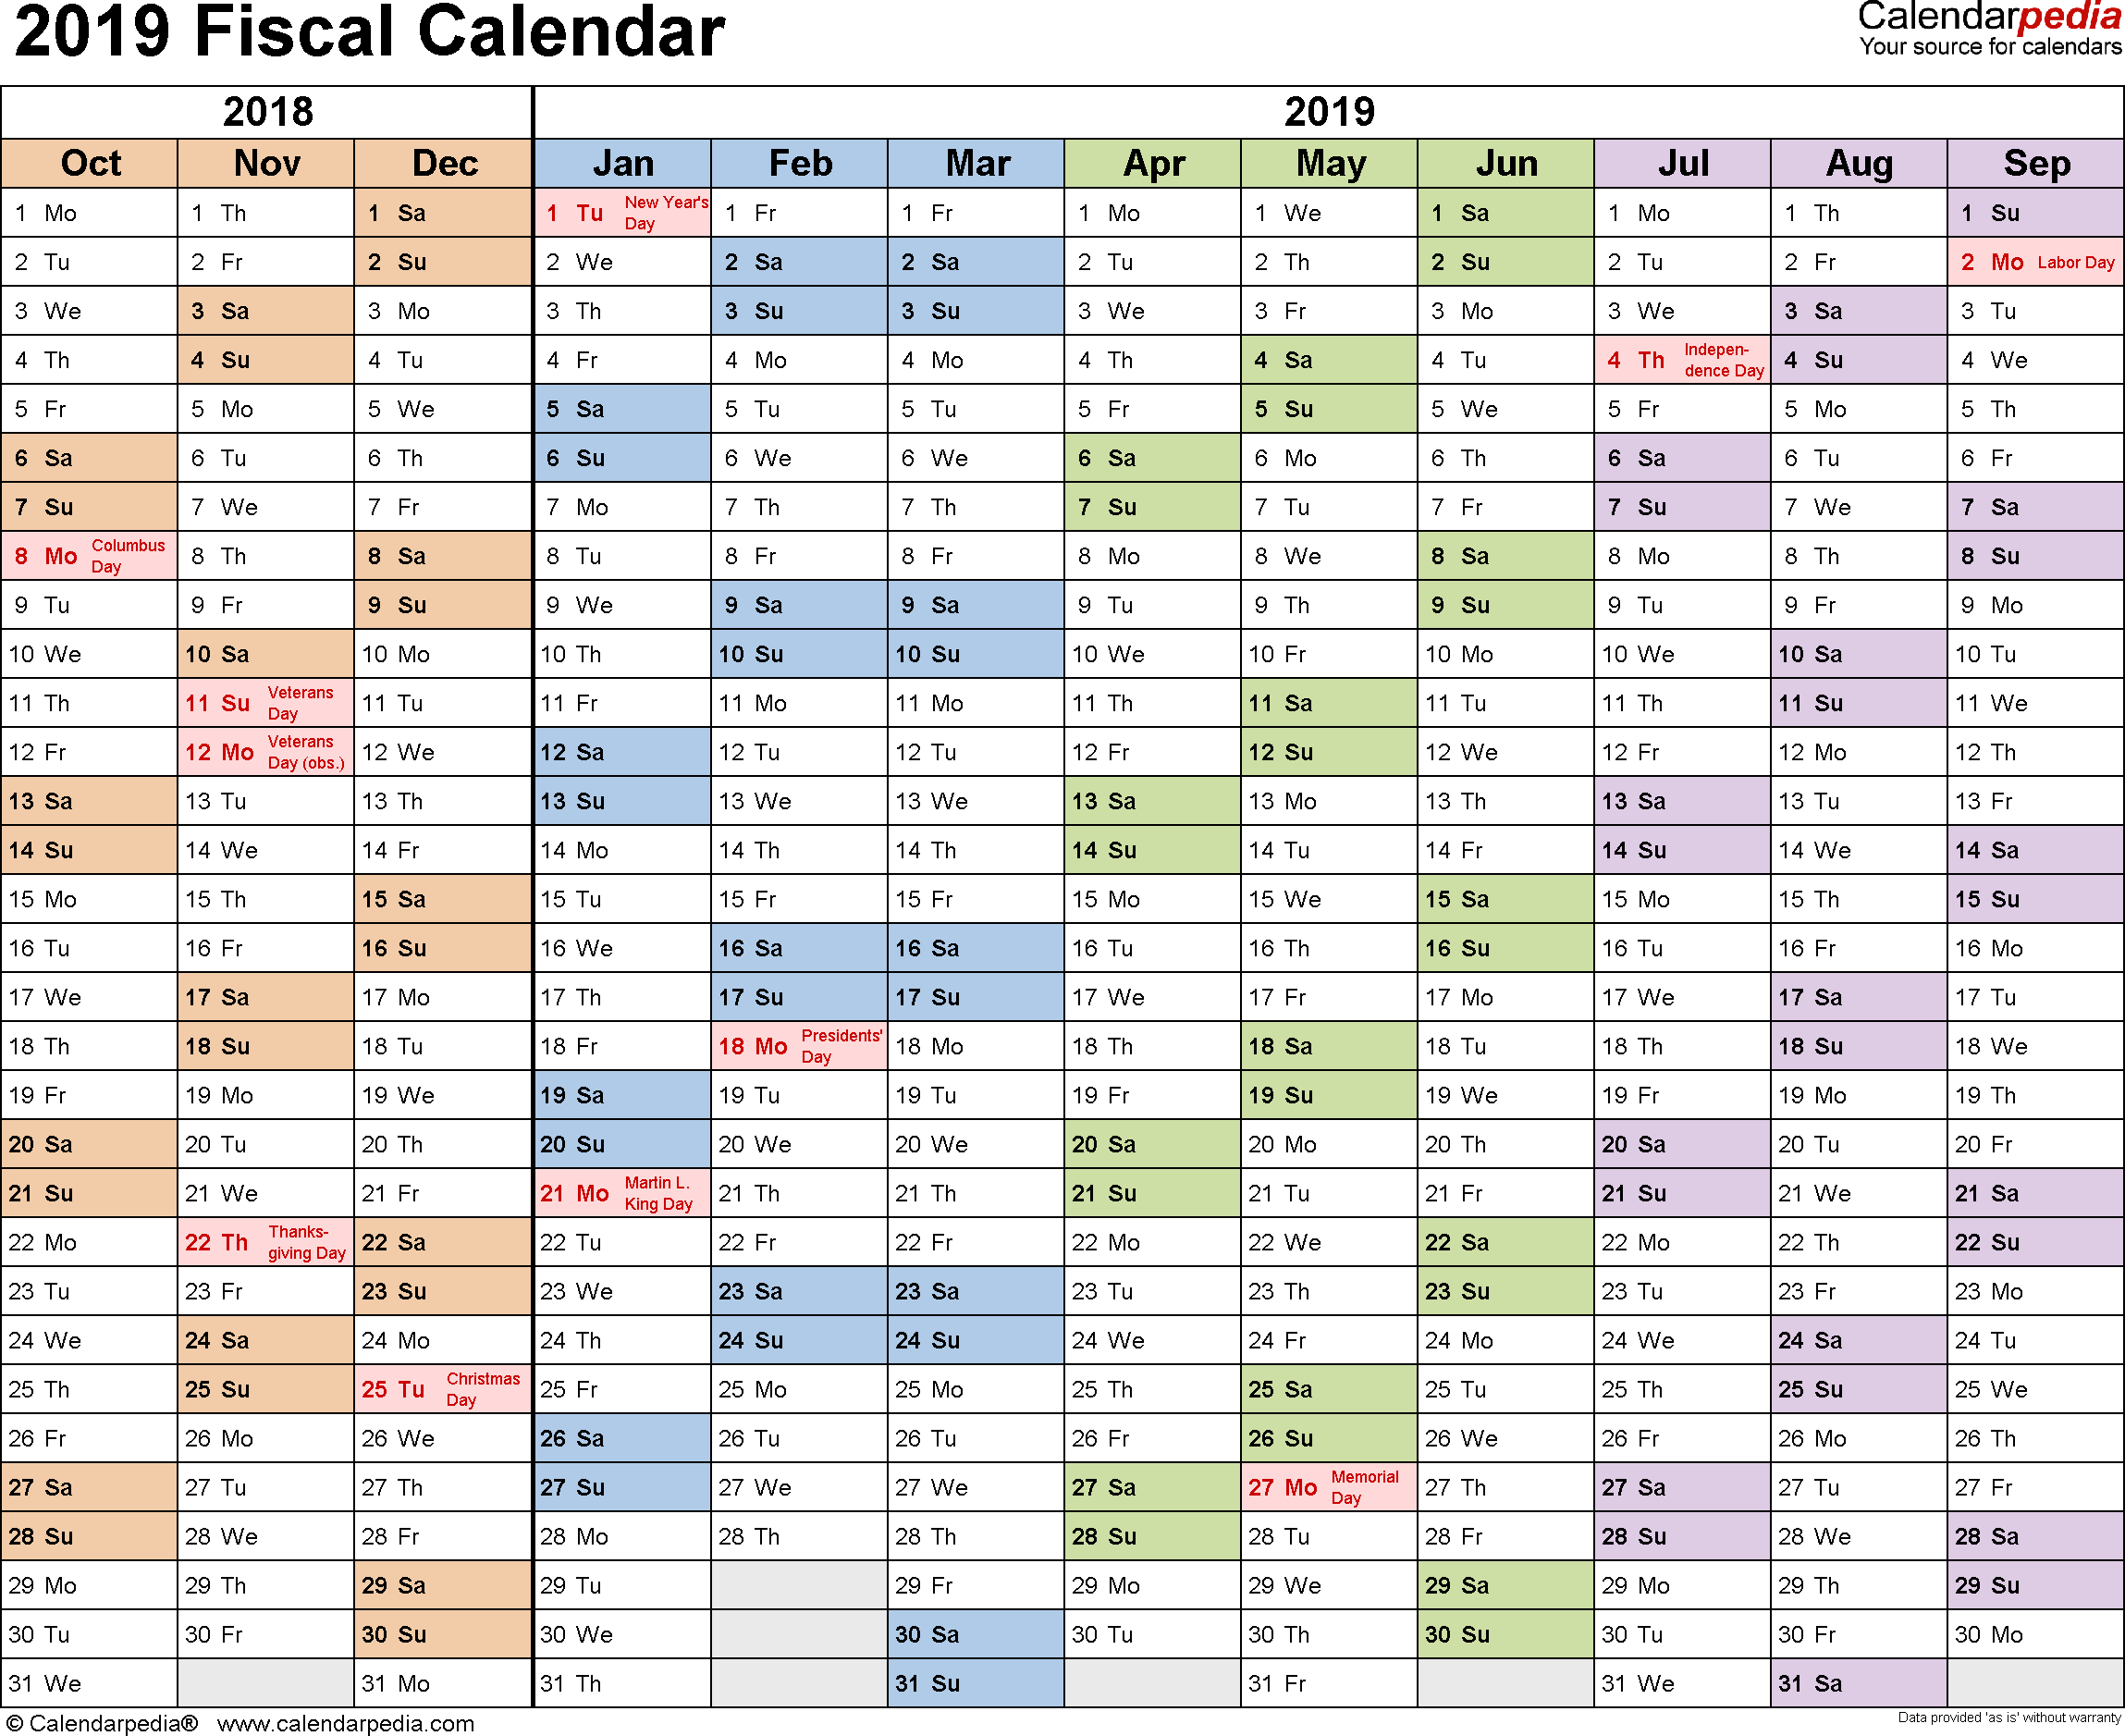 Week Of Year Calendar 2019 With Fiscal Calendars As Free Printable PDF Templates